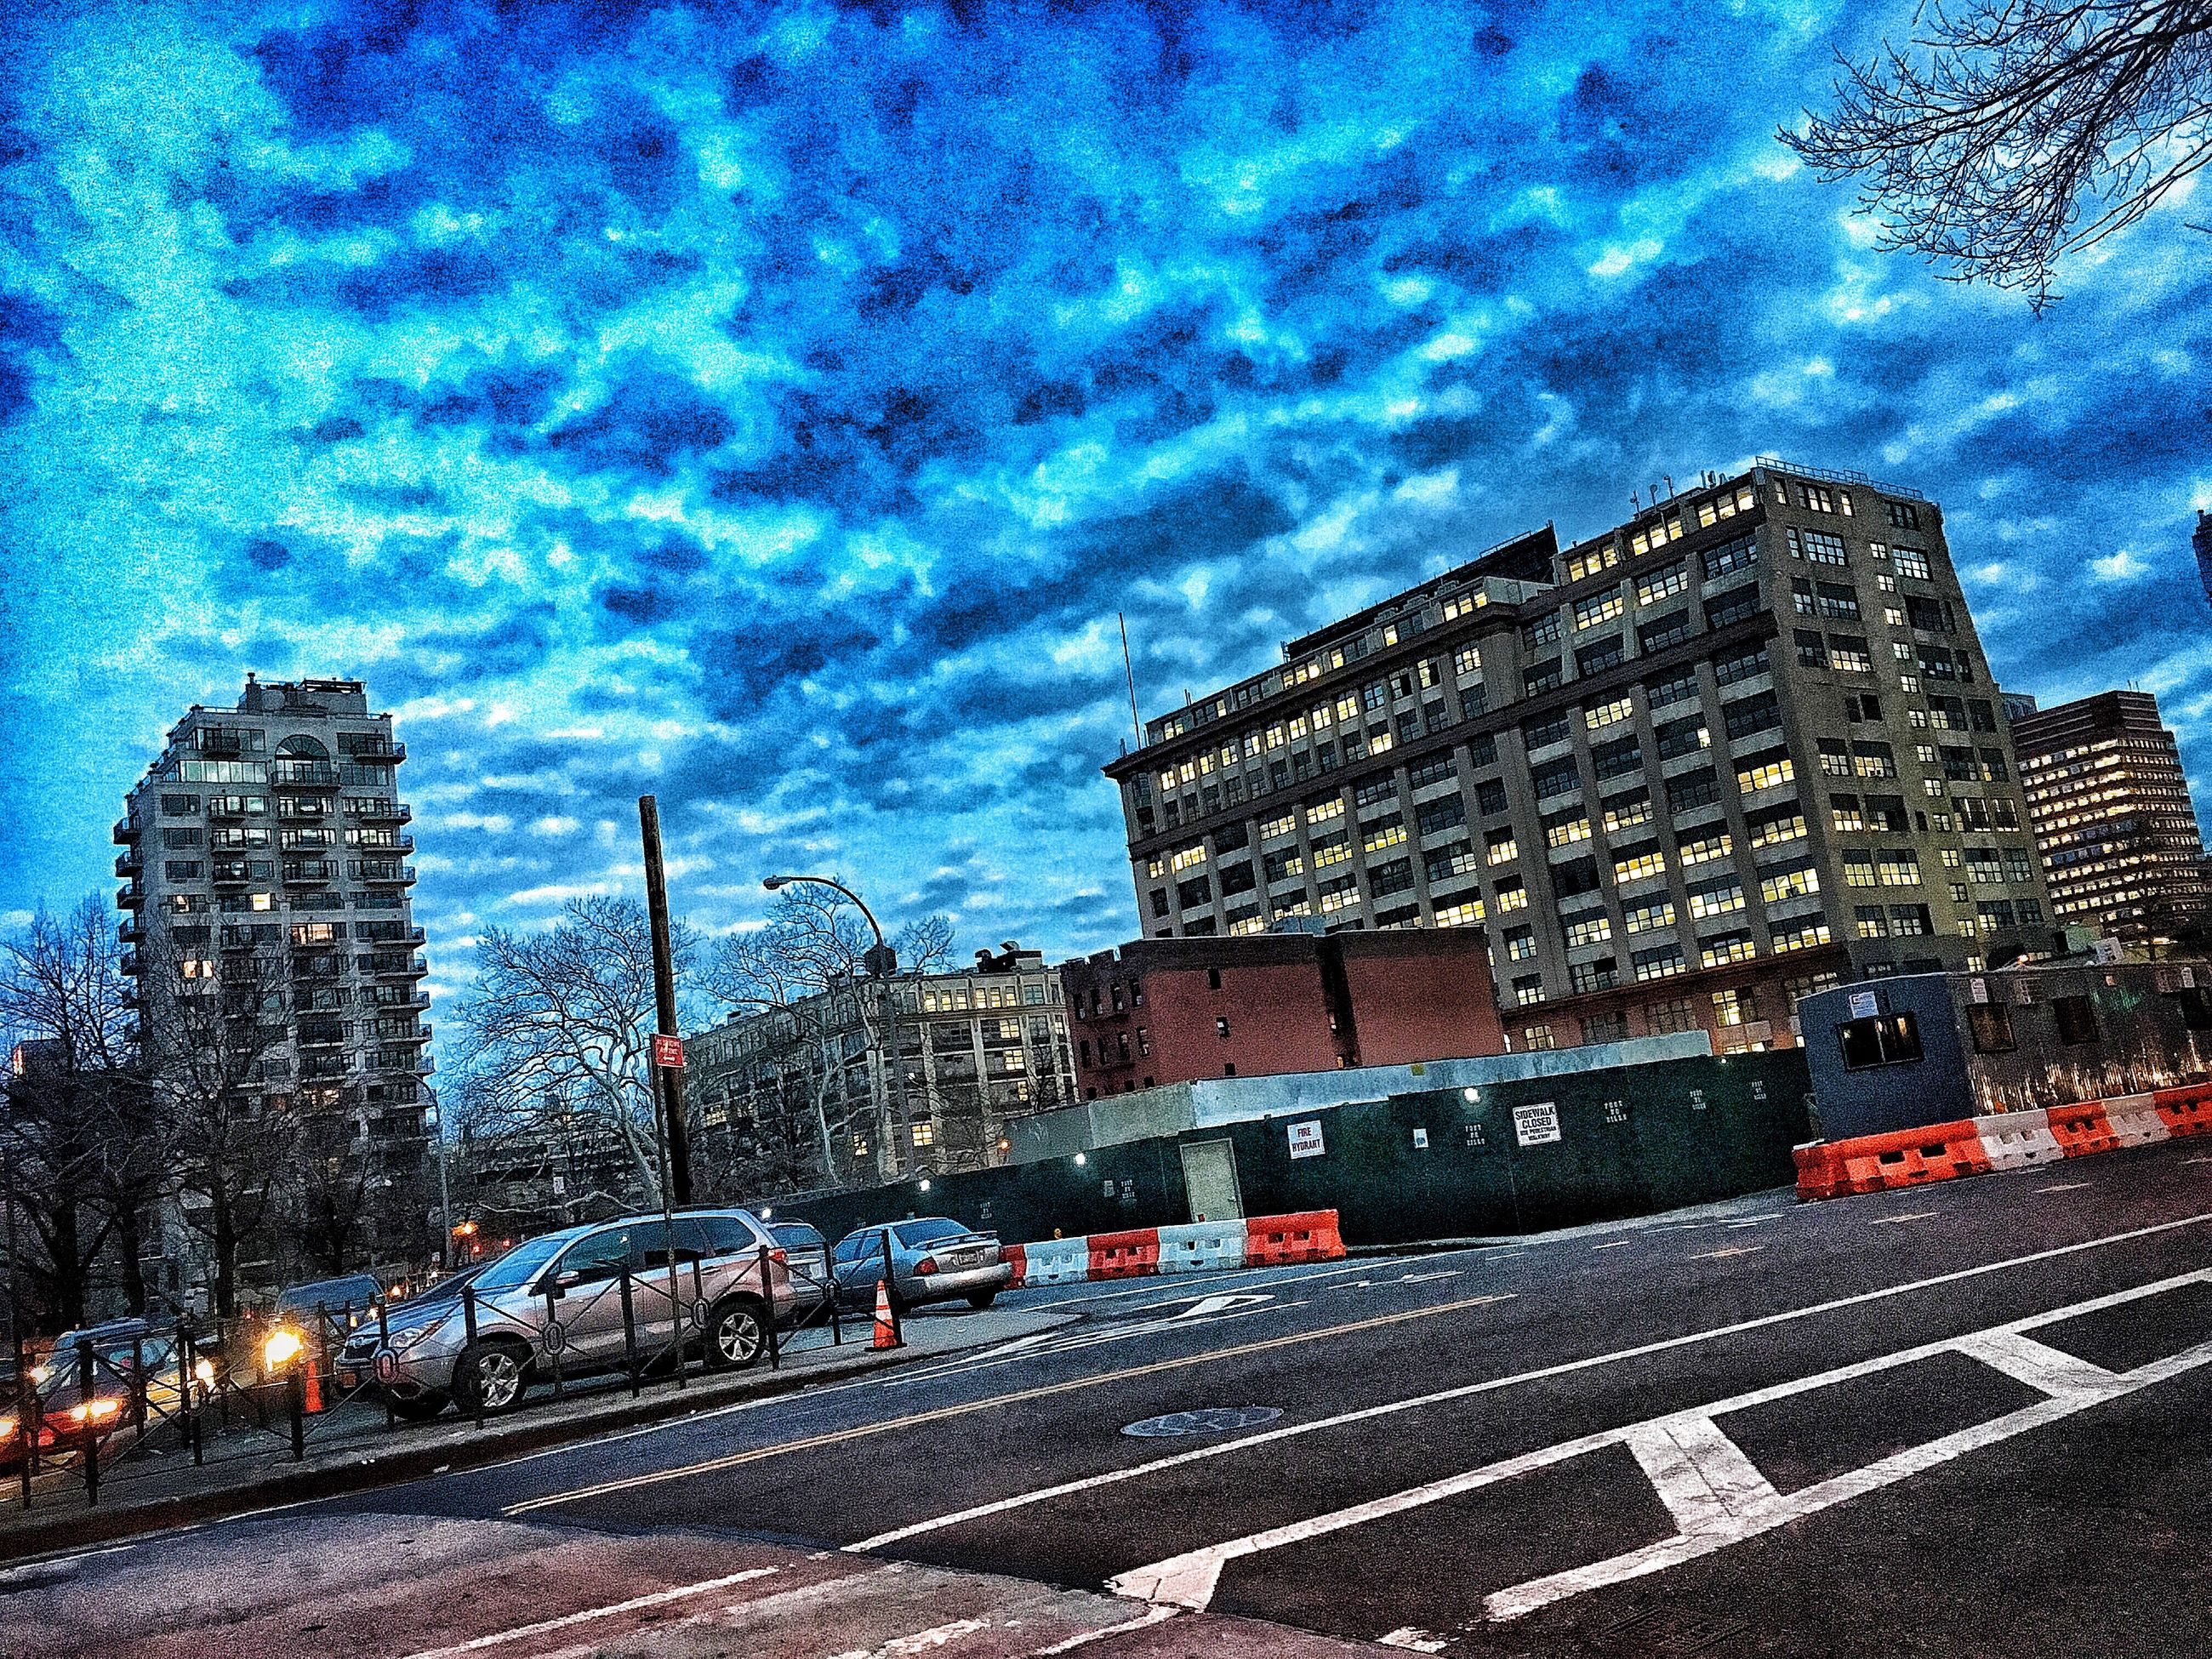 sky, cloud - sky, building exterior, transportation, architecture, built structure, city, car, land vehicle, cloudy, road, street, cloud, blue, mode of transport, dusk, no people, city life, outdoors, illuminated